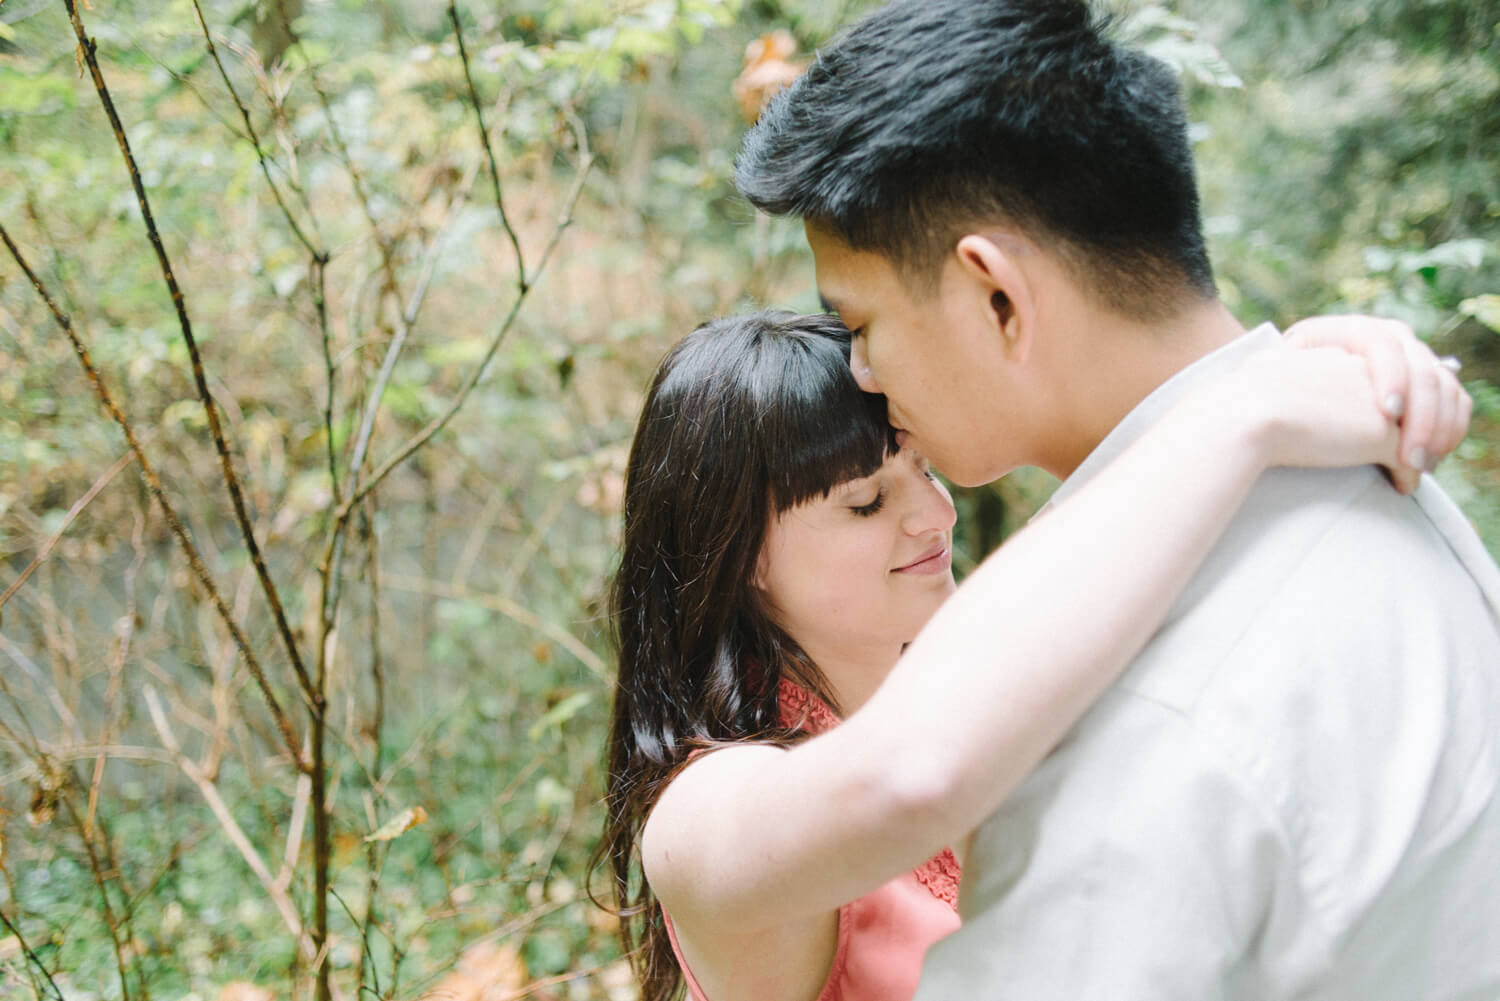 leach-botanical-garden-engagement-photography-portland-oregon-shelley-marie-photo-0646.jpg